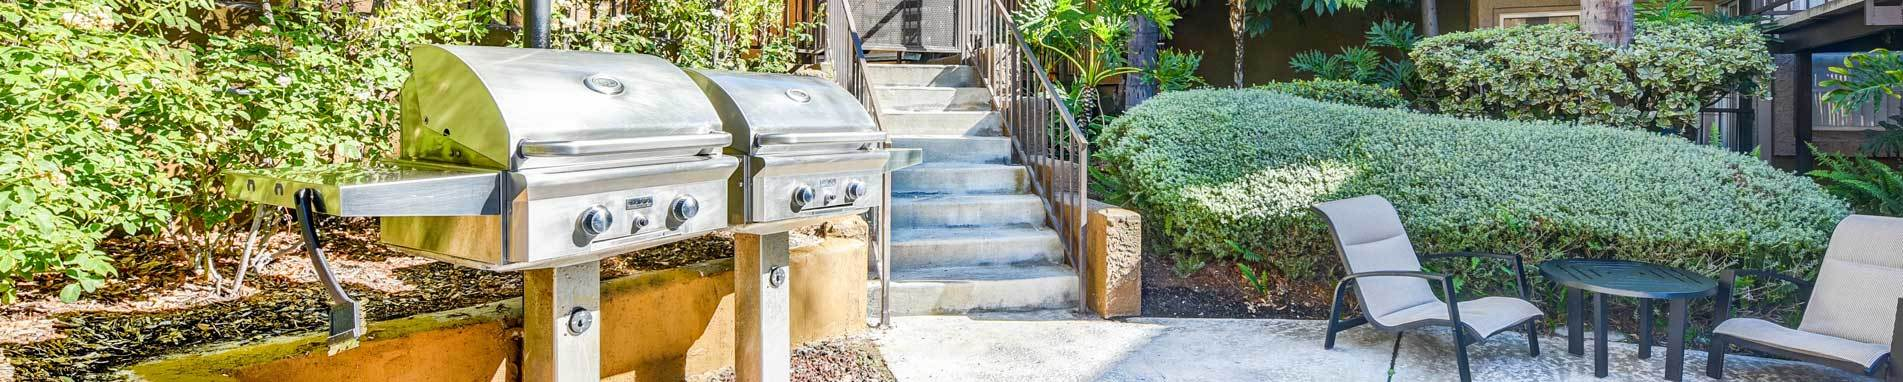 Pet friendly apartments in Burbank